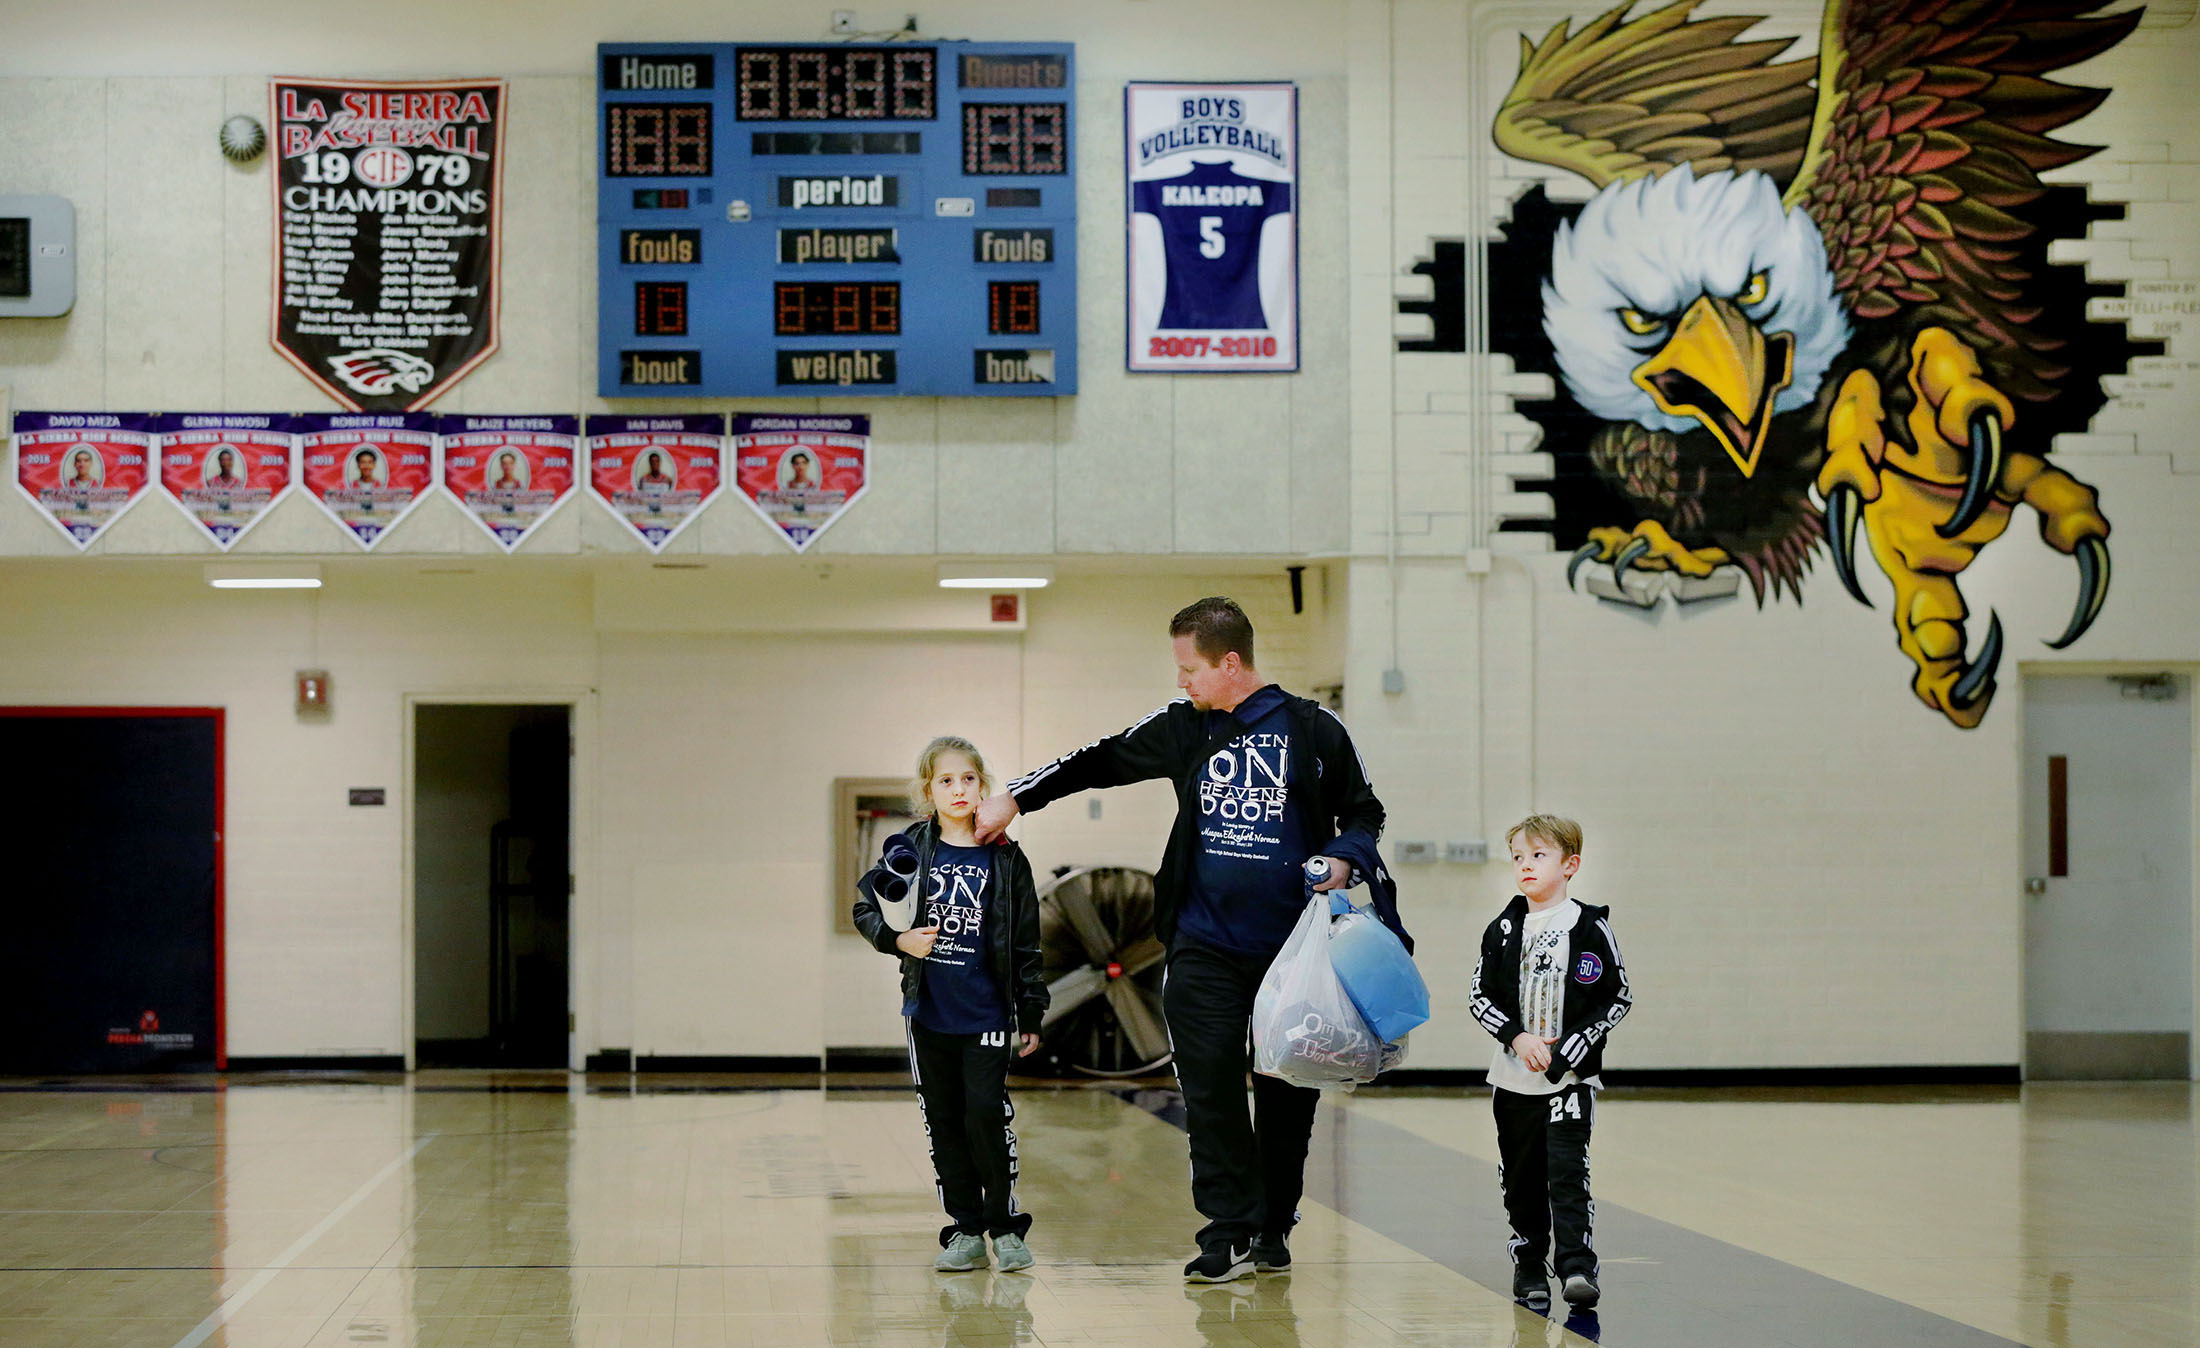 La Sierra boys basketball coach Justin Norman heads home with his children Juliya Norman, 9, left and Jake Norman, 5, after returning to the bench to coach the Eagles against Patriot 10 days after the sudden death of his wife, Meagan, with the help of family and friends in Riverside on Friday, January 11, 2019.